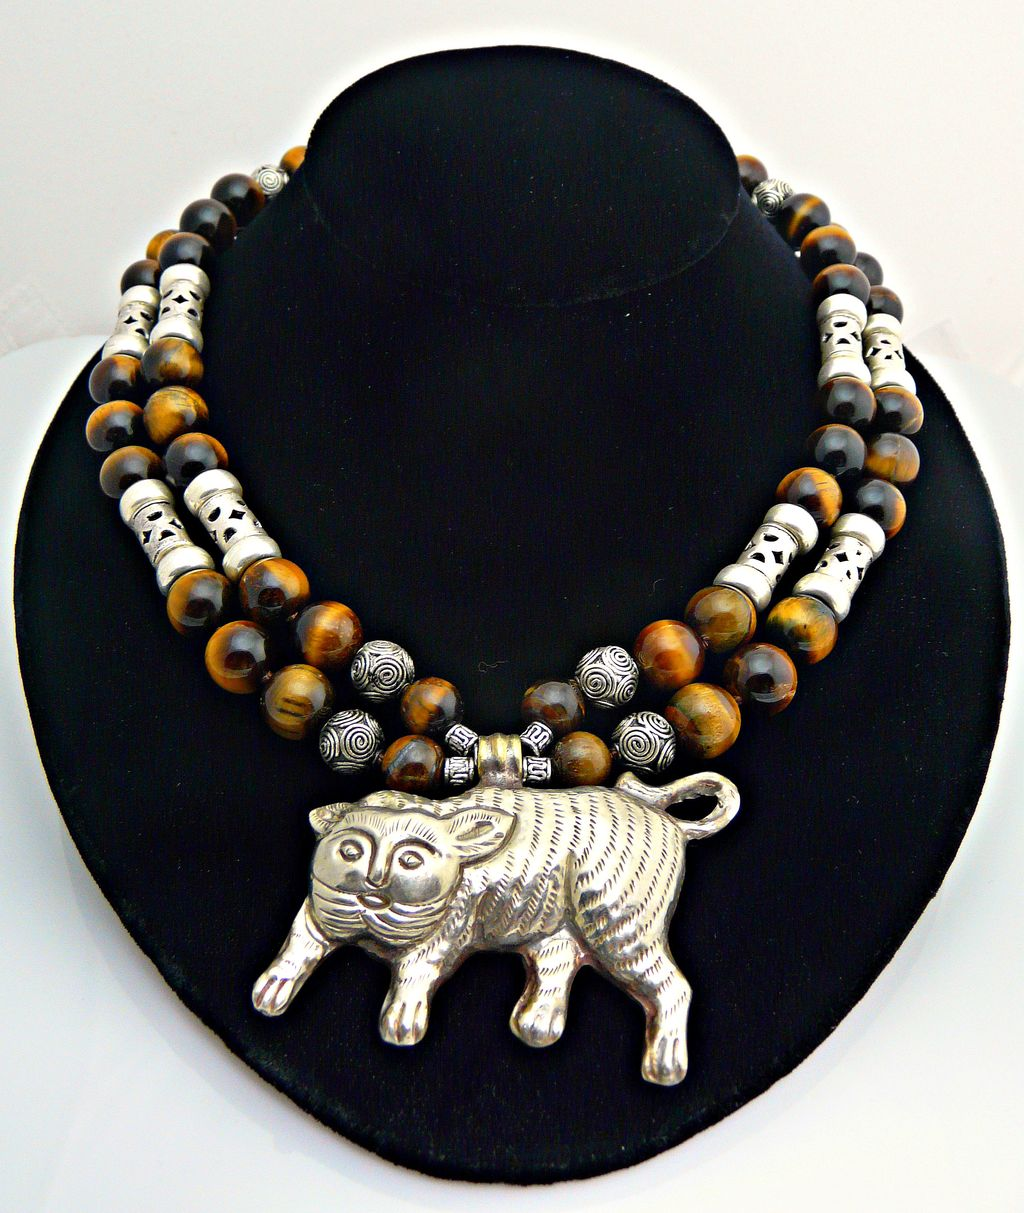 Artisan Handmade Adorable Cat Tiger Eye and Sterling Silver Necklace with Smiling Cat/ Tiger Pendant